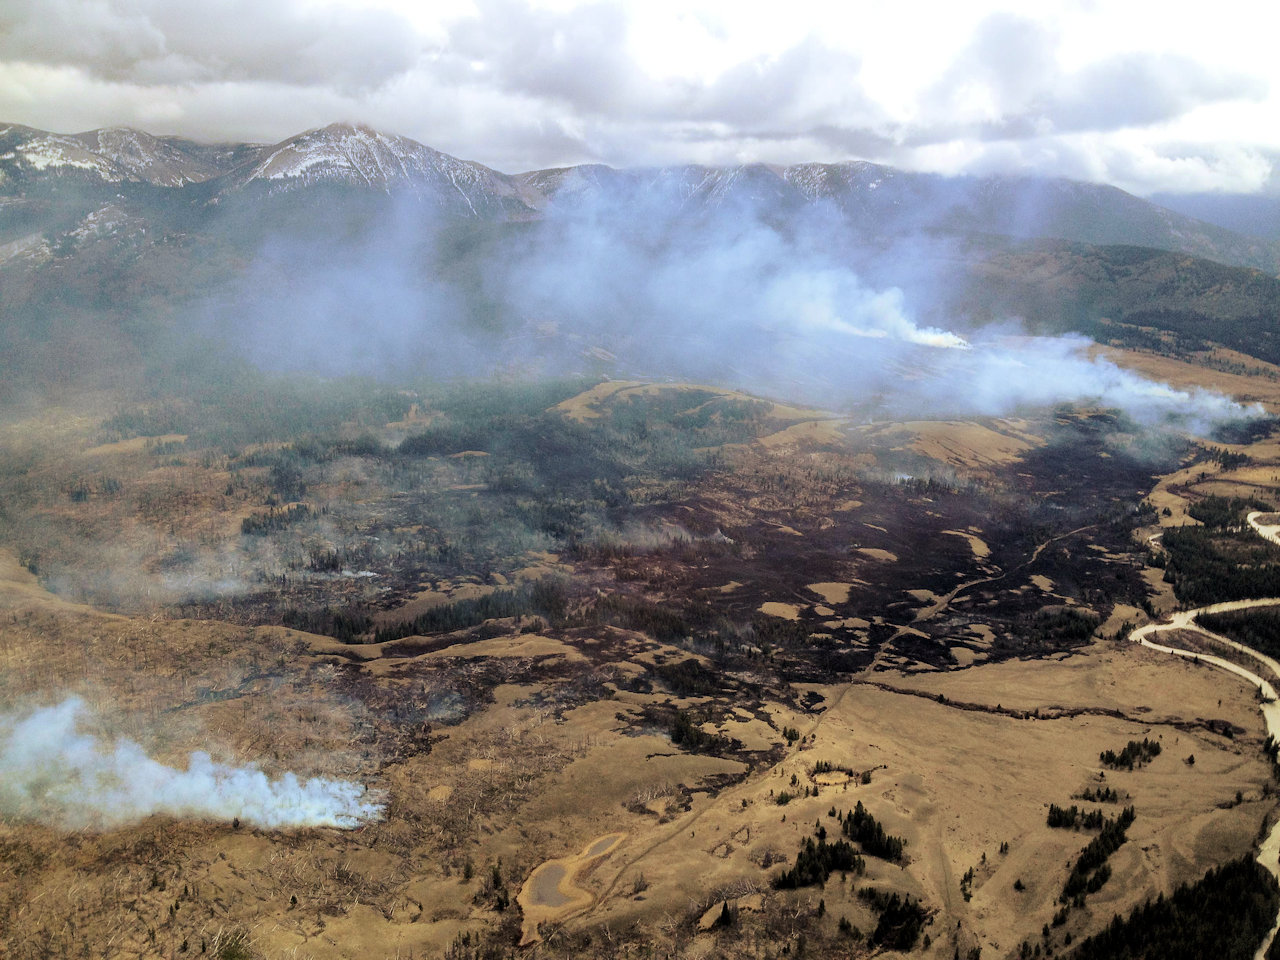 Elk Hill Fire, aerial view. April 10, 2016 - USFS photo